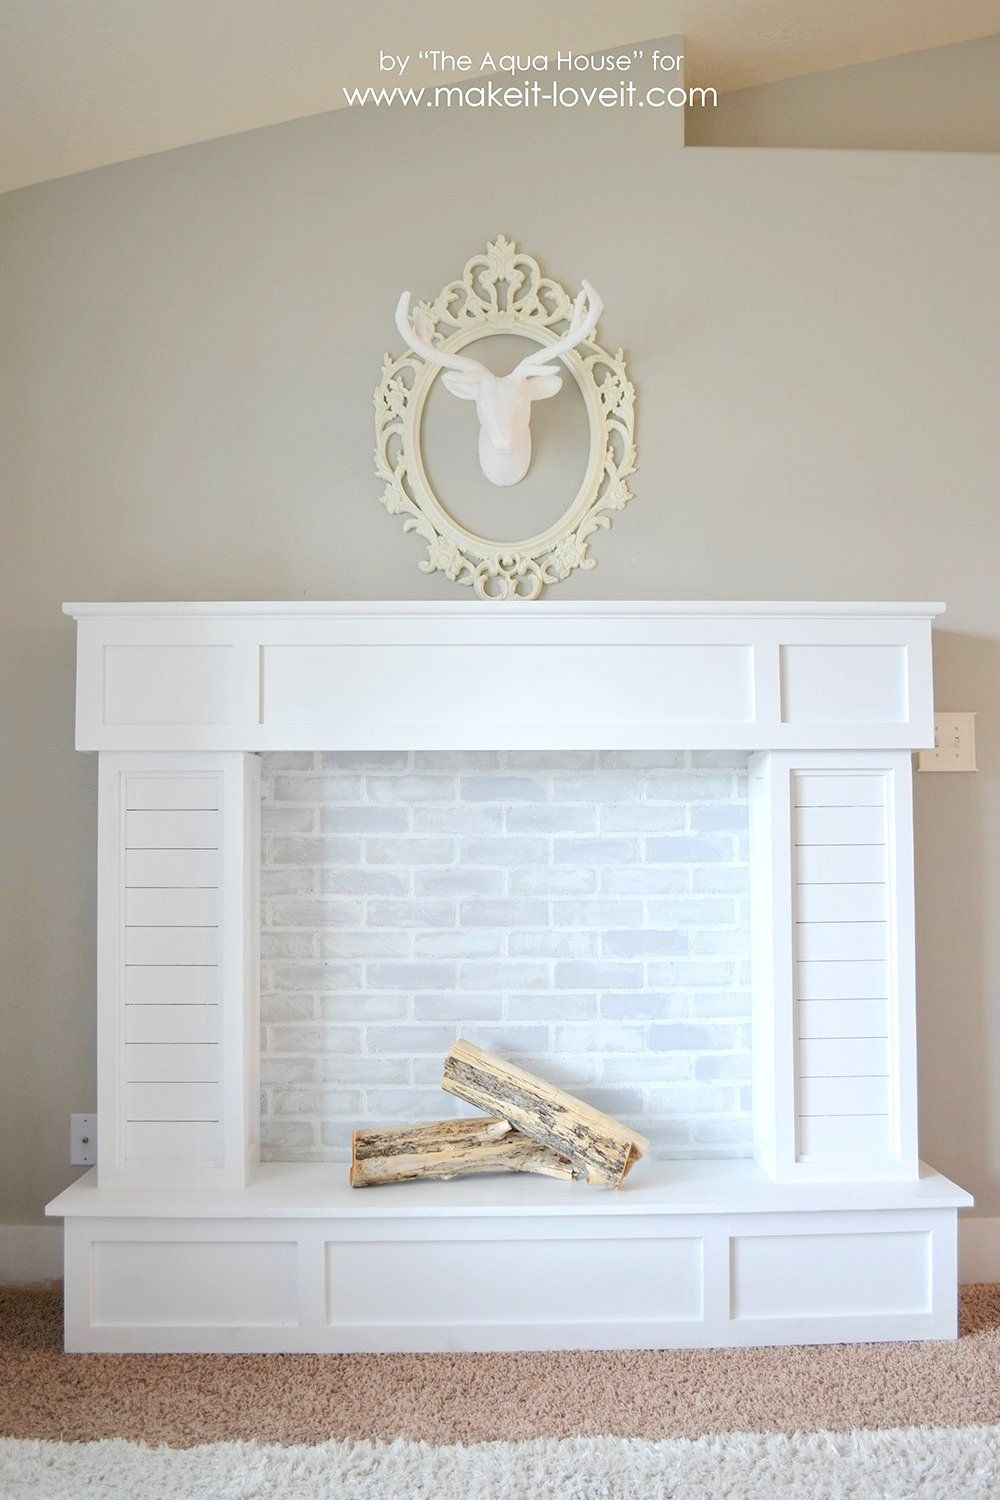 Make A Faux Fireplace With Hearth That Looks Absolutely Real Faux Fireplace Diy Faux Fireplace Diy Fireplace